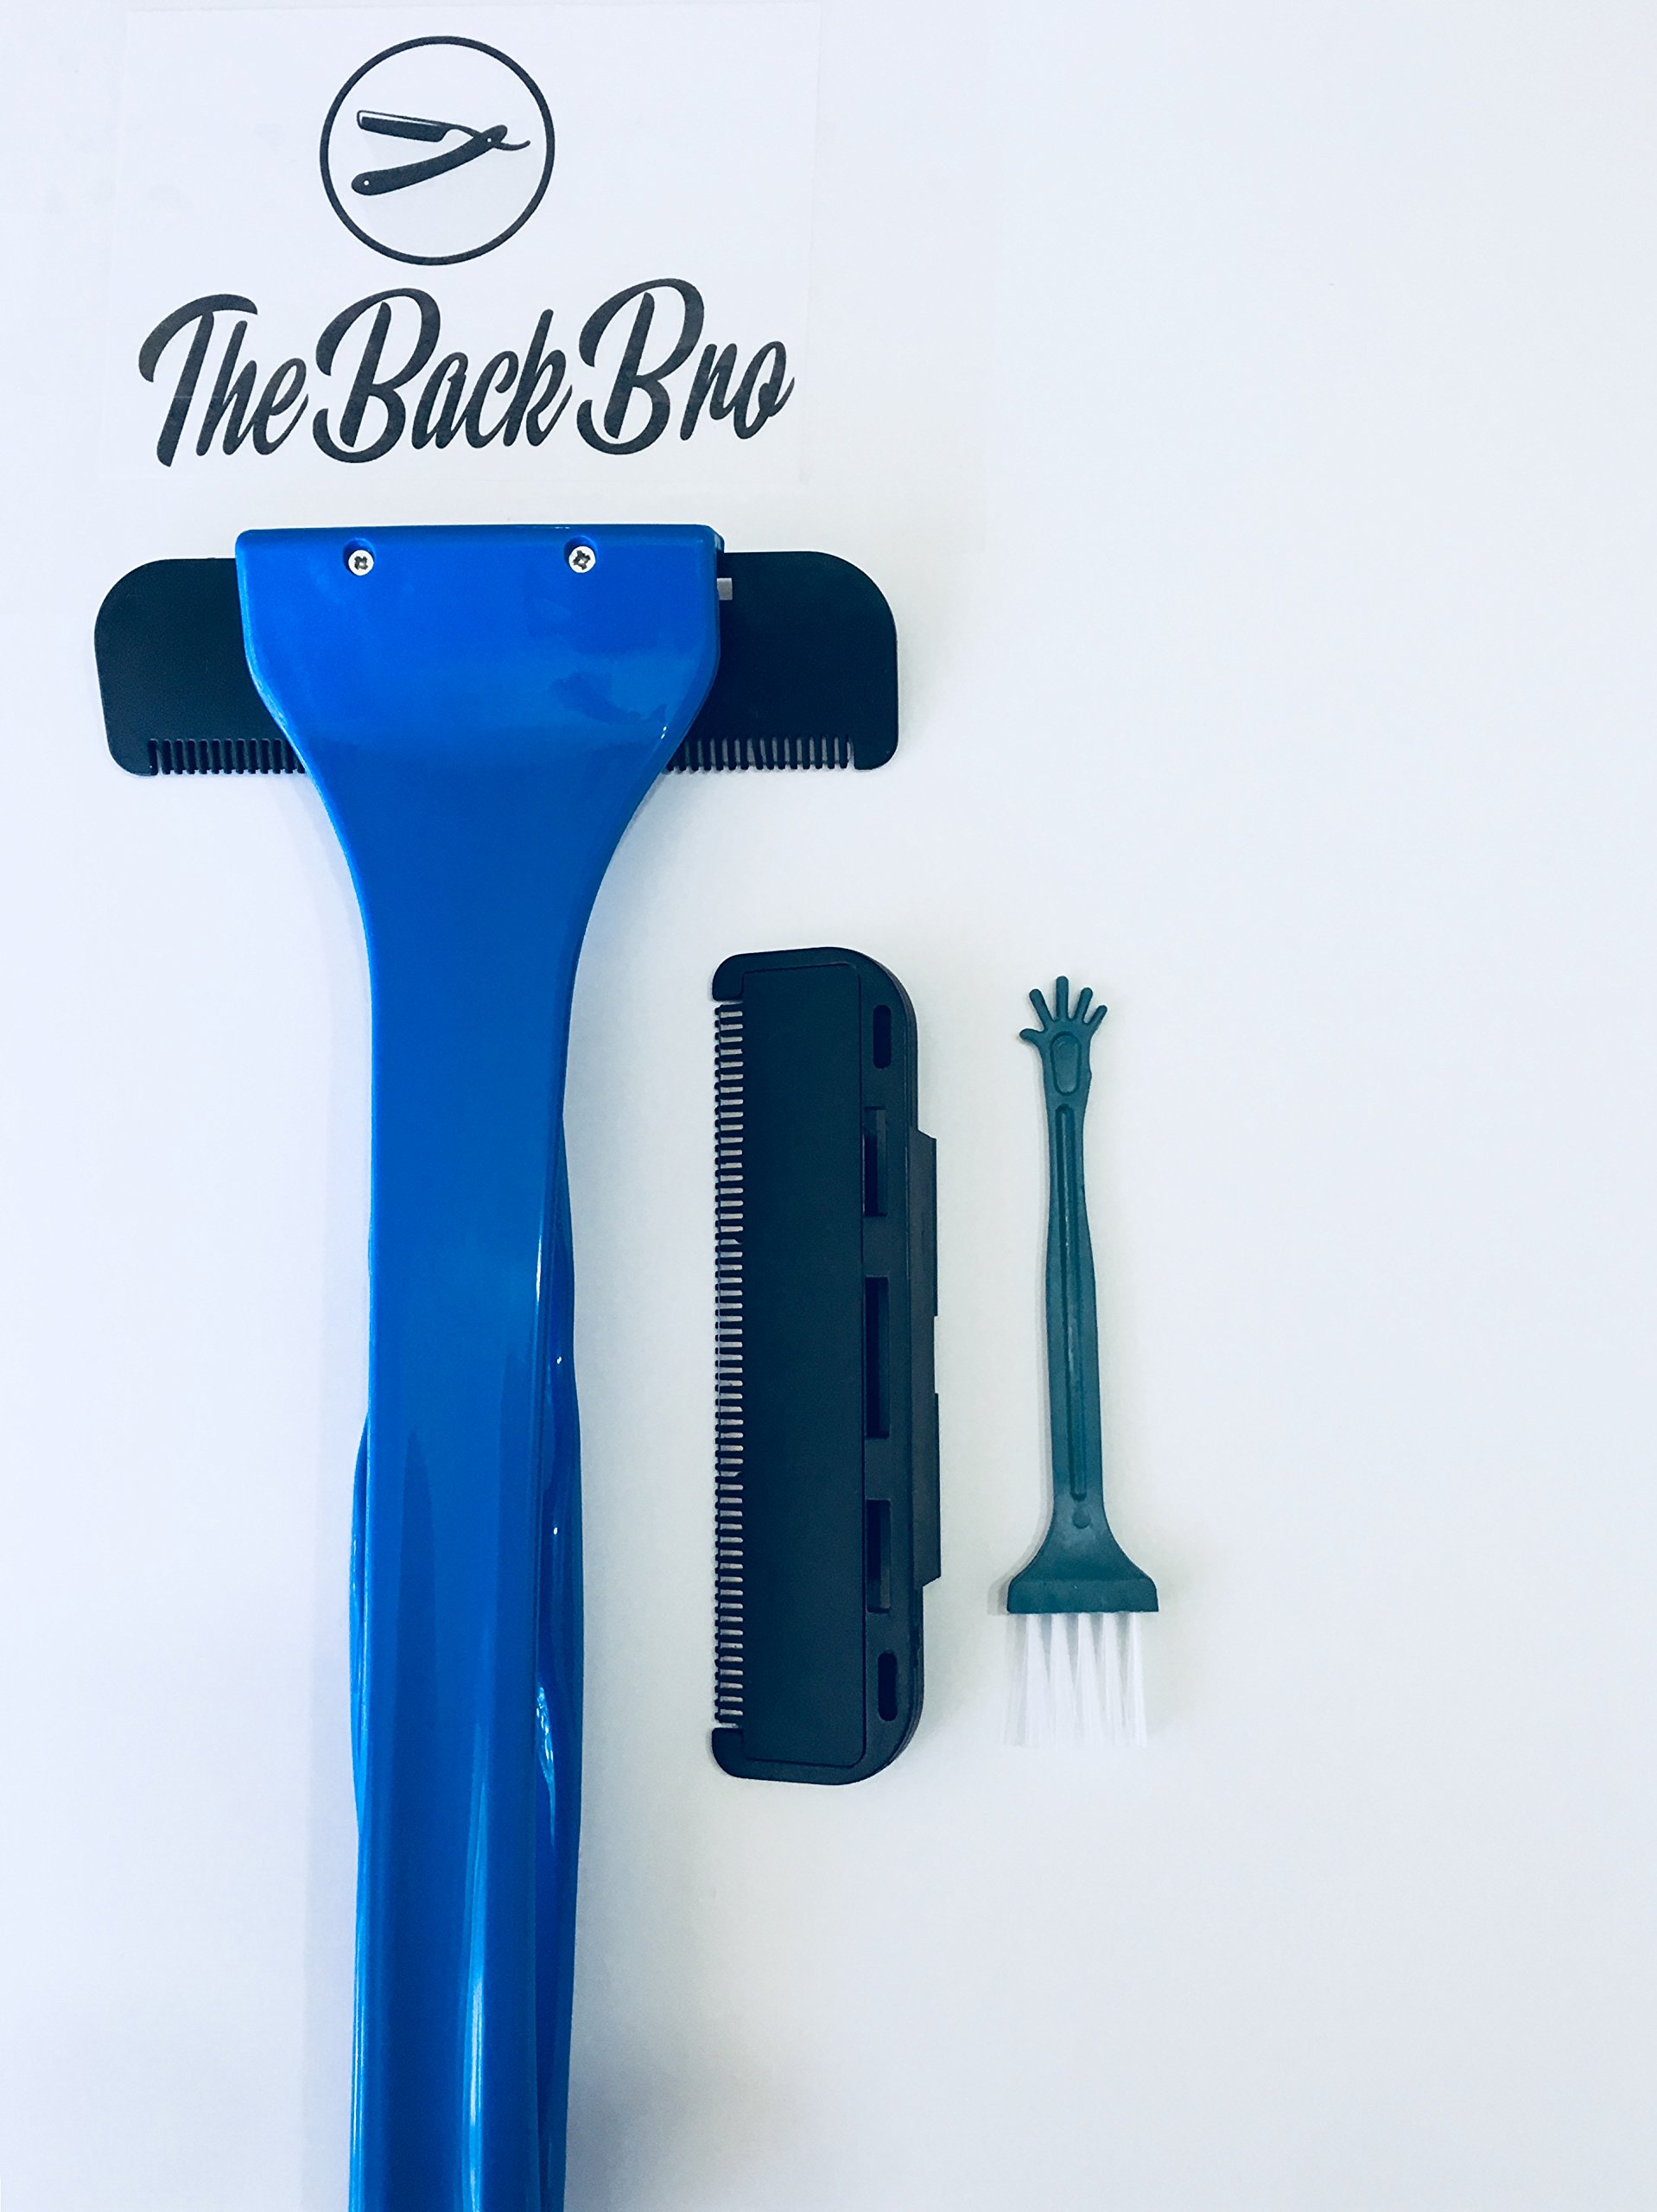 Back Hair Shaver {The Back Bro} Back Hair Removal Kit, Ergonomically Design 17'' Handle For Hard -to -Reach Areas, Lil Bro Cleaning Brush and 1 Replacement Blade, (Blue)